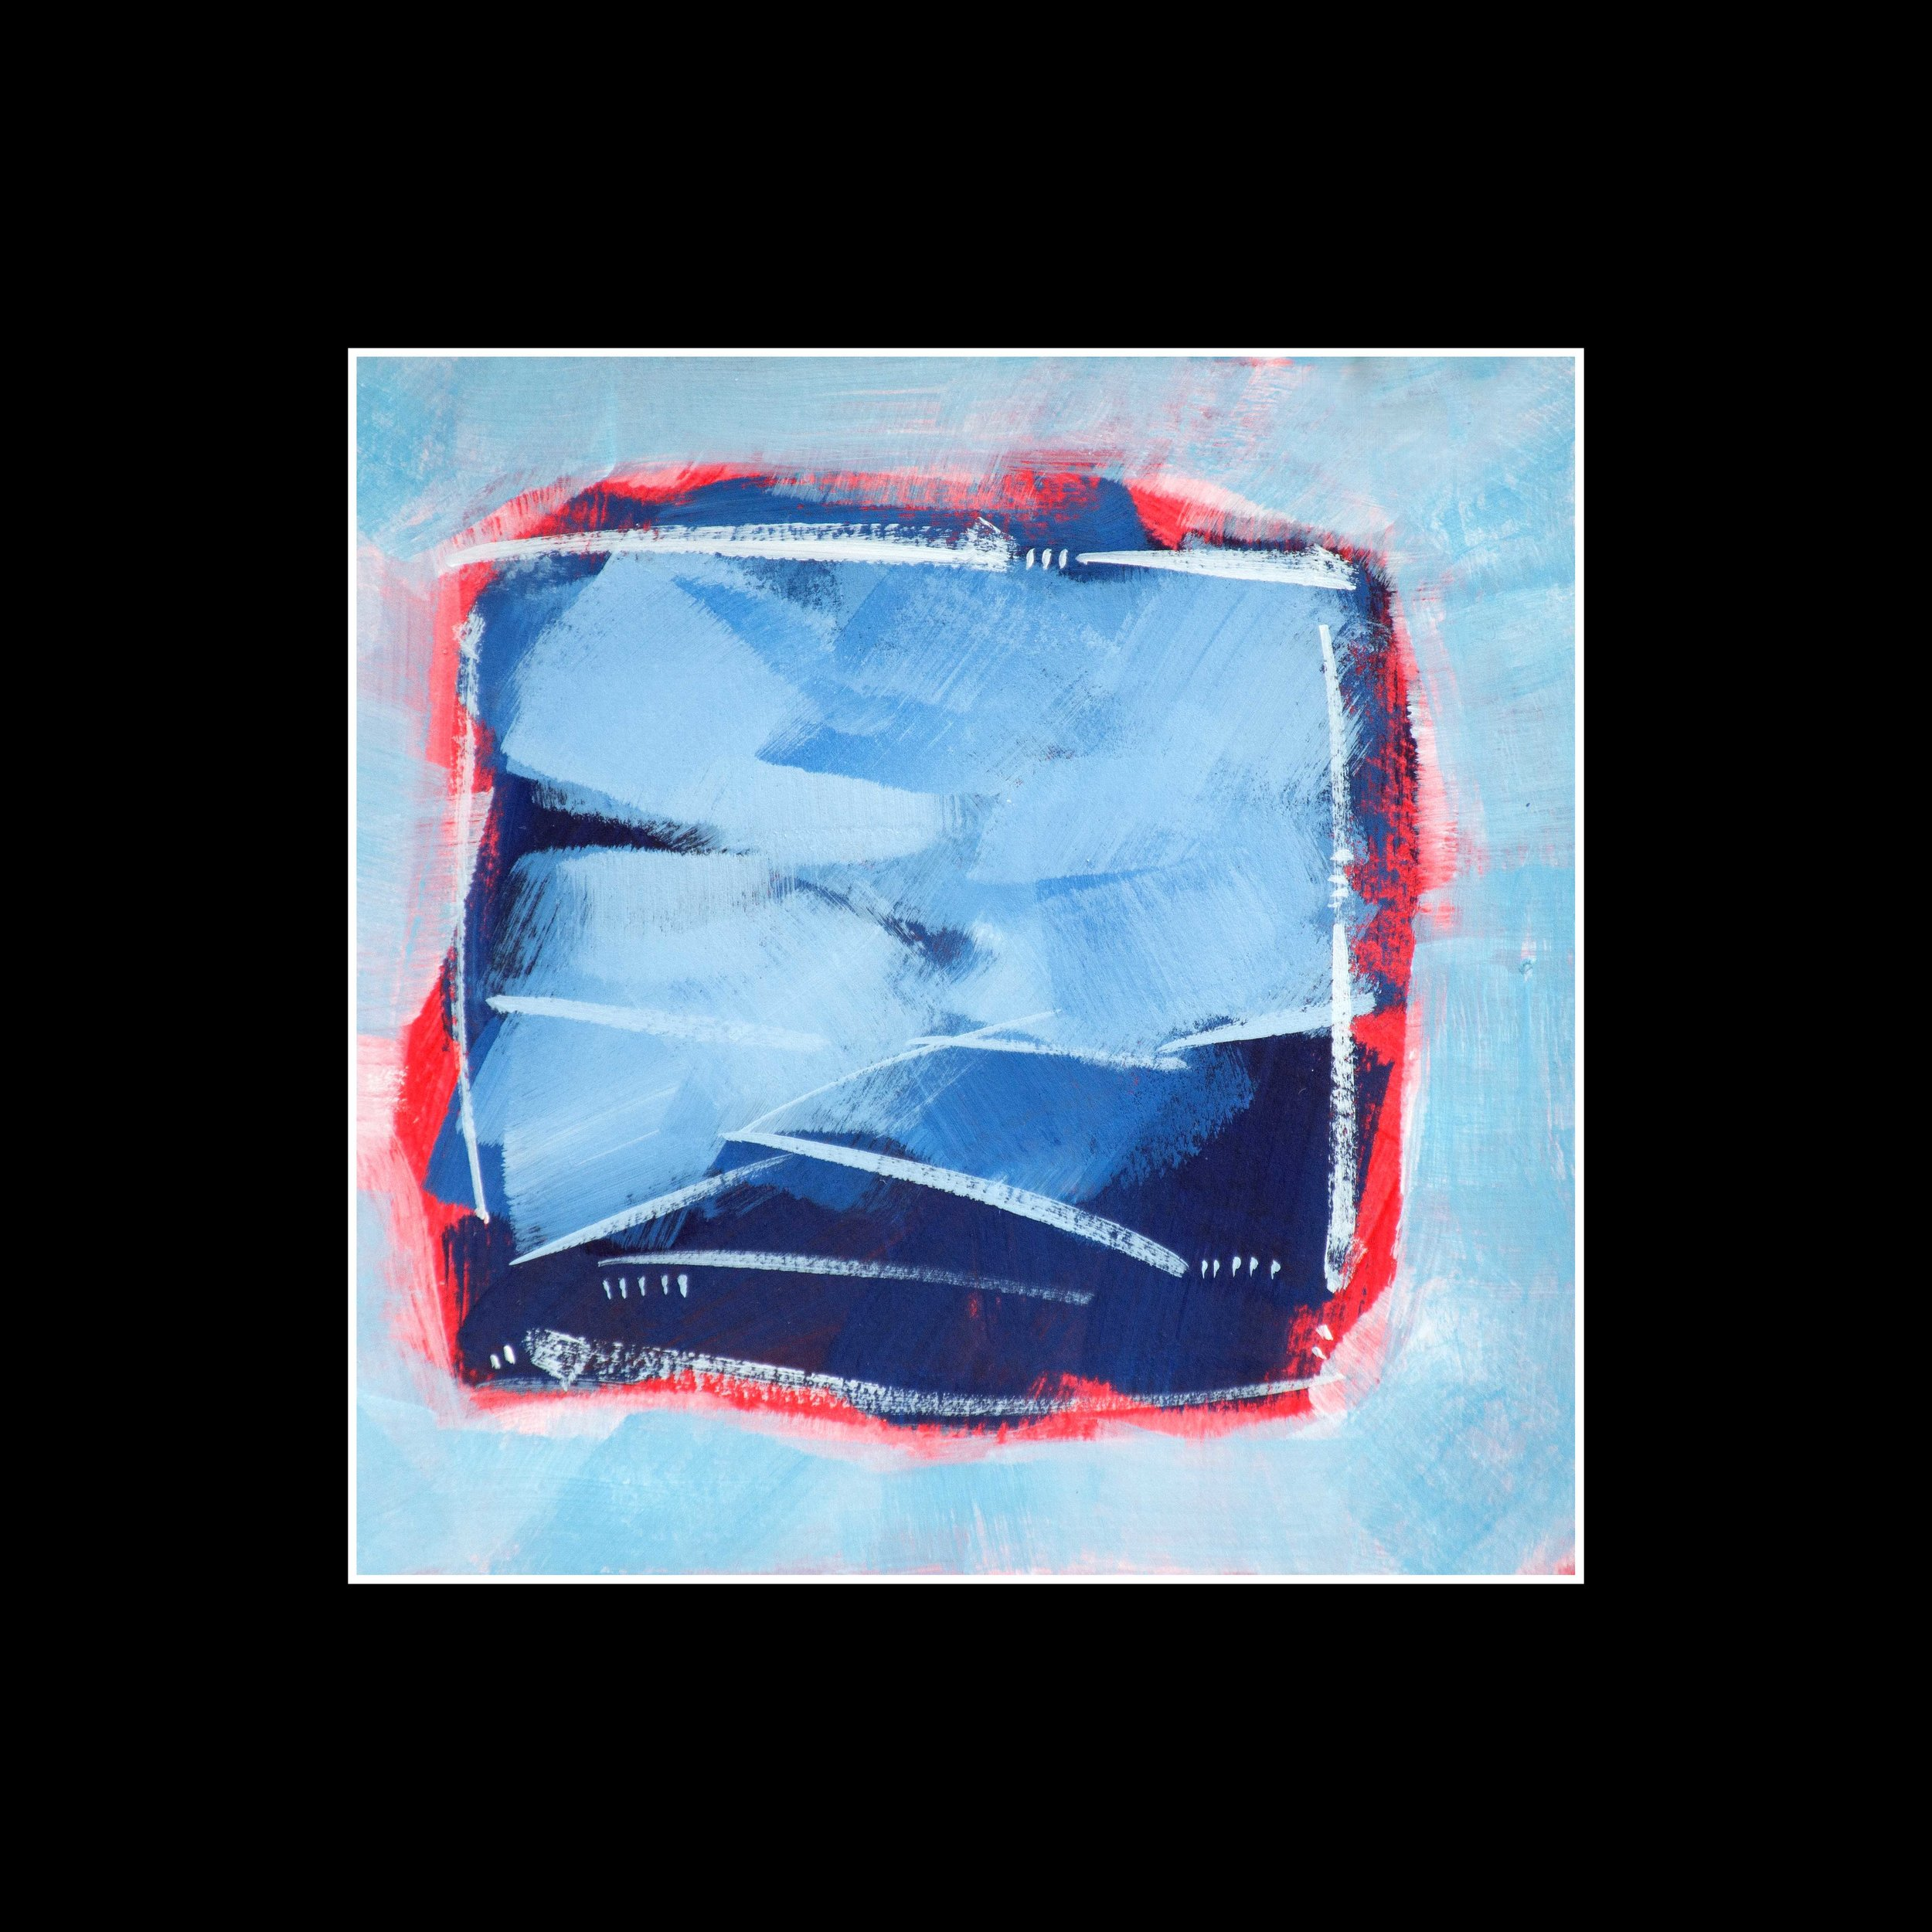 RWS006_Landscape in blue #6_SF_BlackMatte.jpg